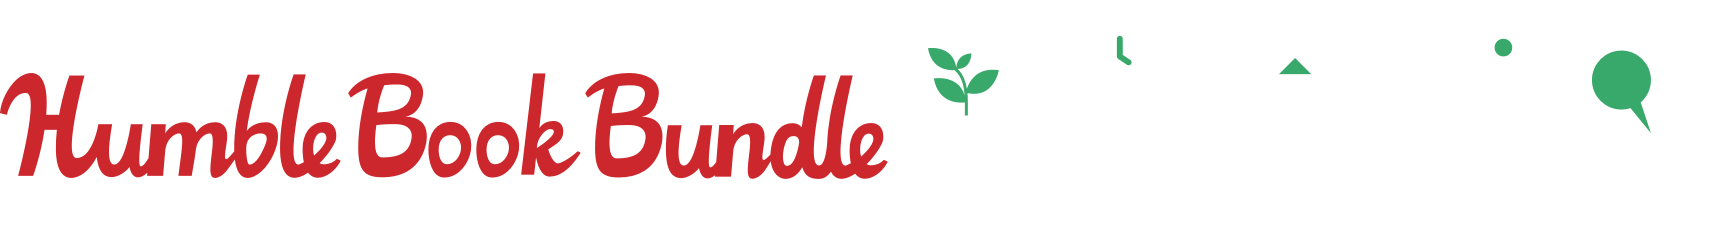 Humble Book Bundle: Work From Home by Wiley